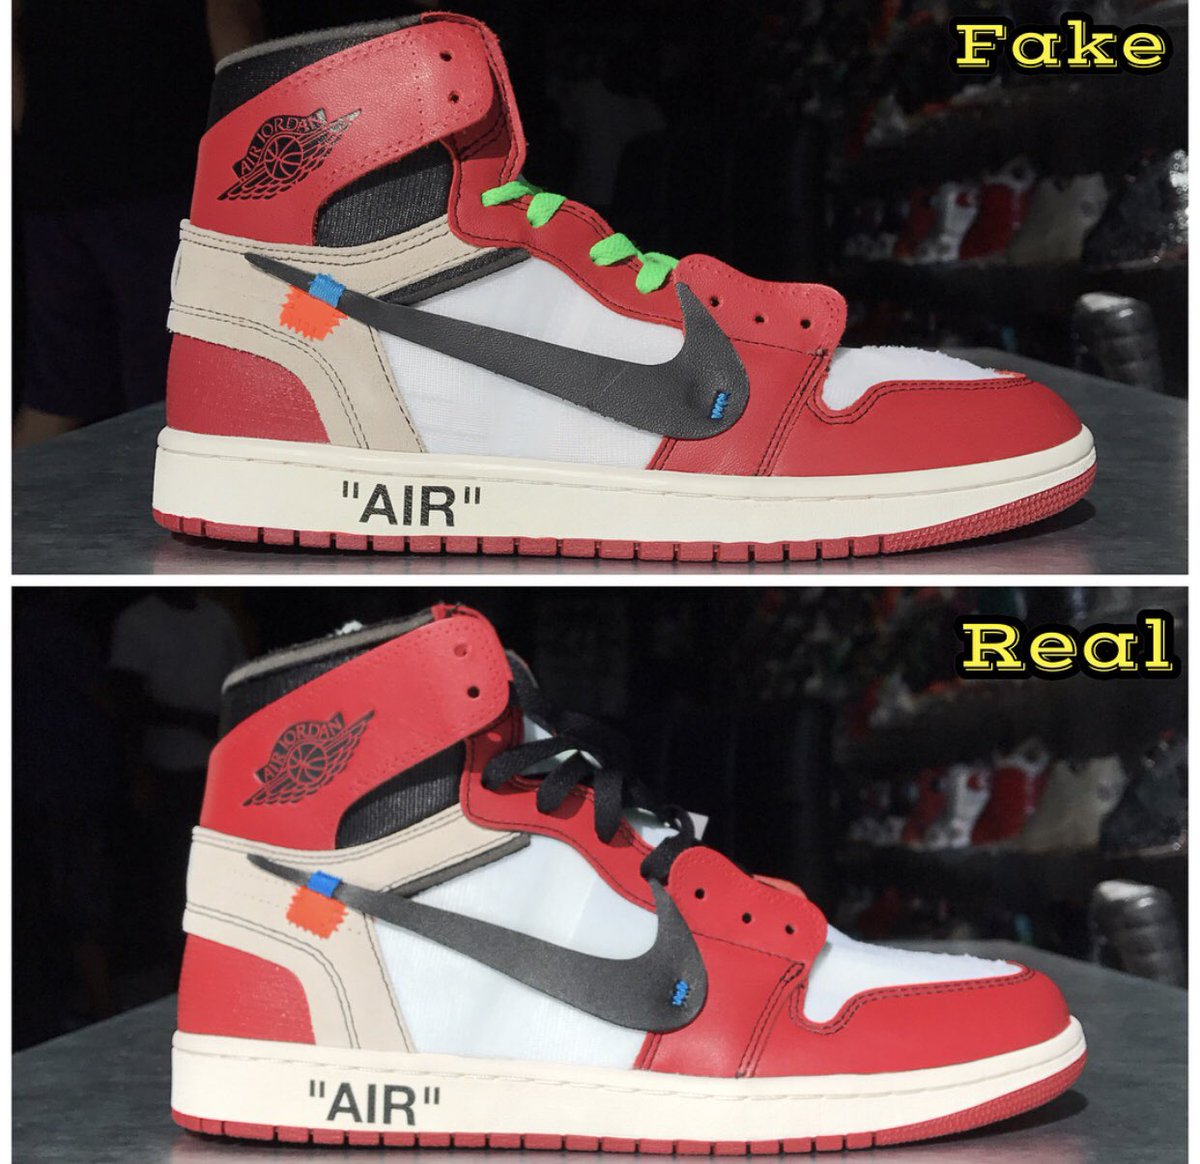 83341801755a TheShoeGame.com on Twitter